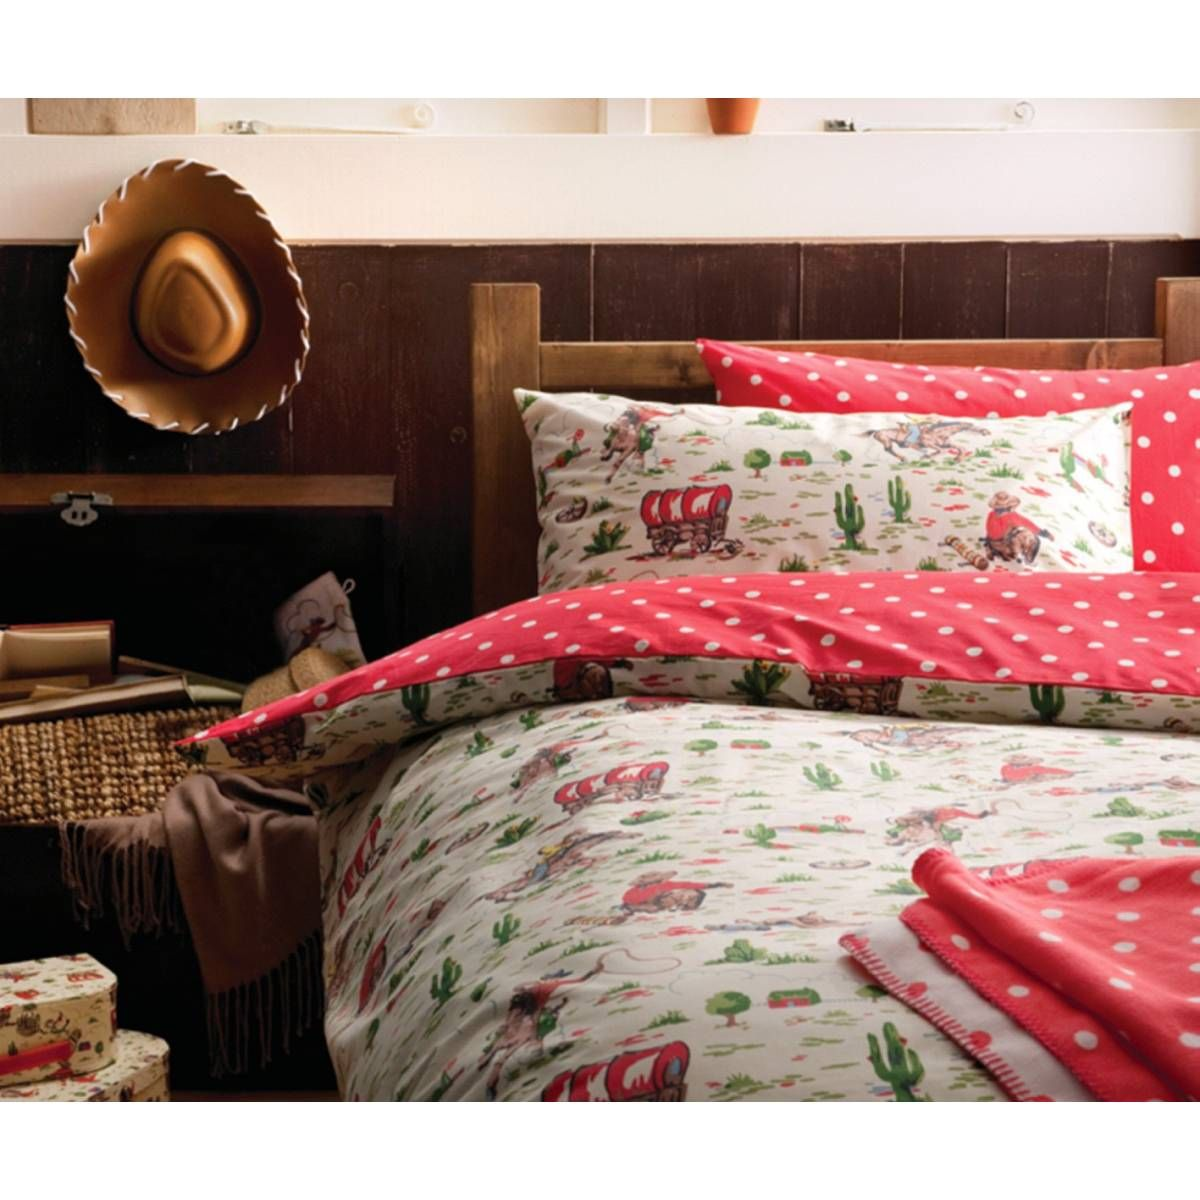 Shabby Chic Childrens Bedroom Furniture Cath Kidston Cowboy Bedding Set Childrens Bedroom Ideas